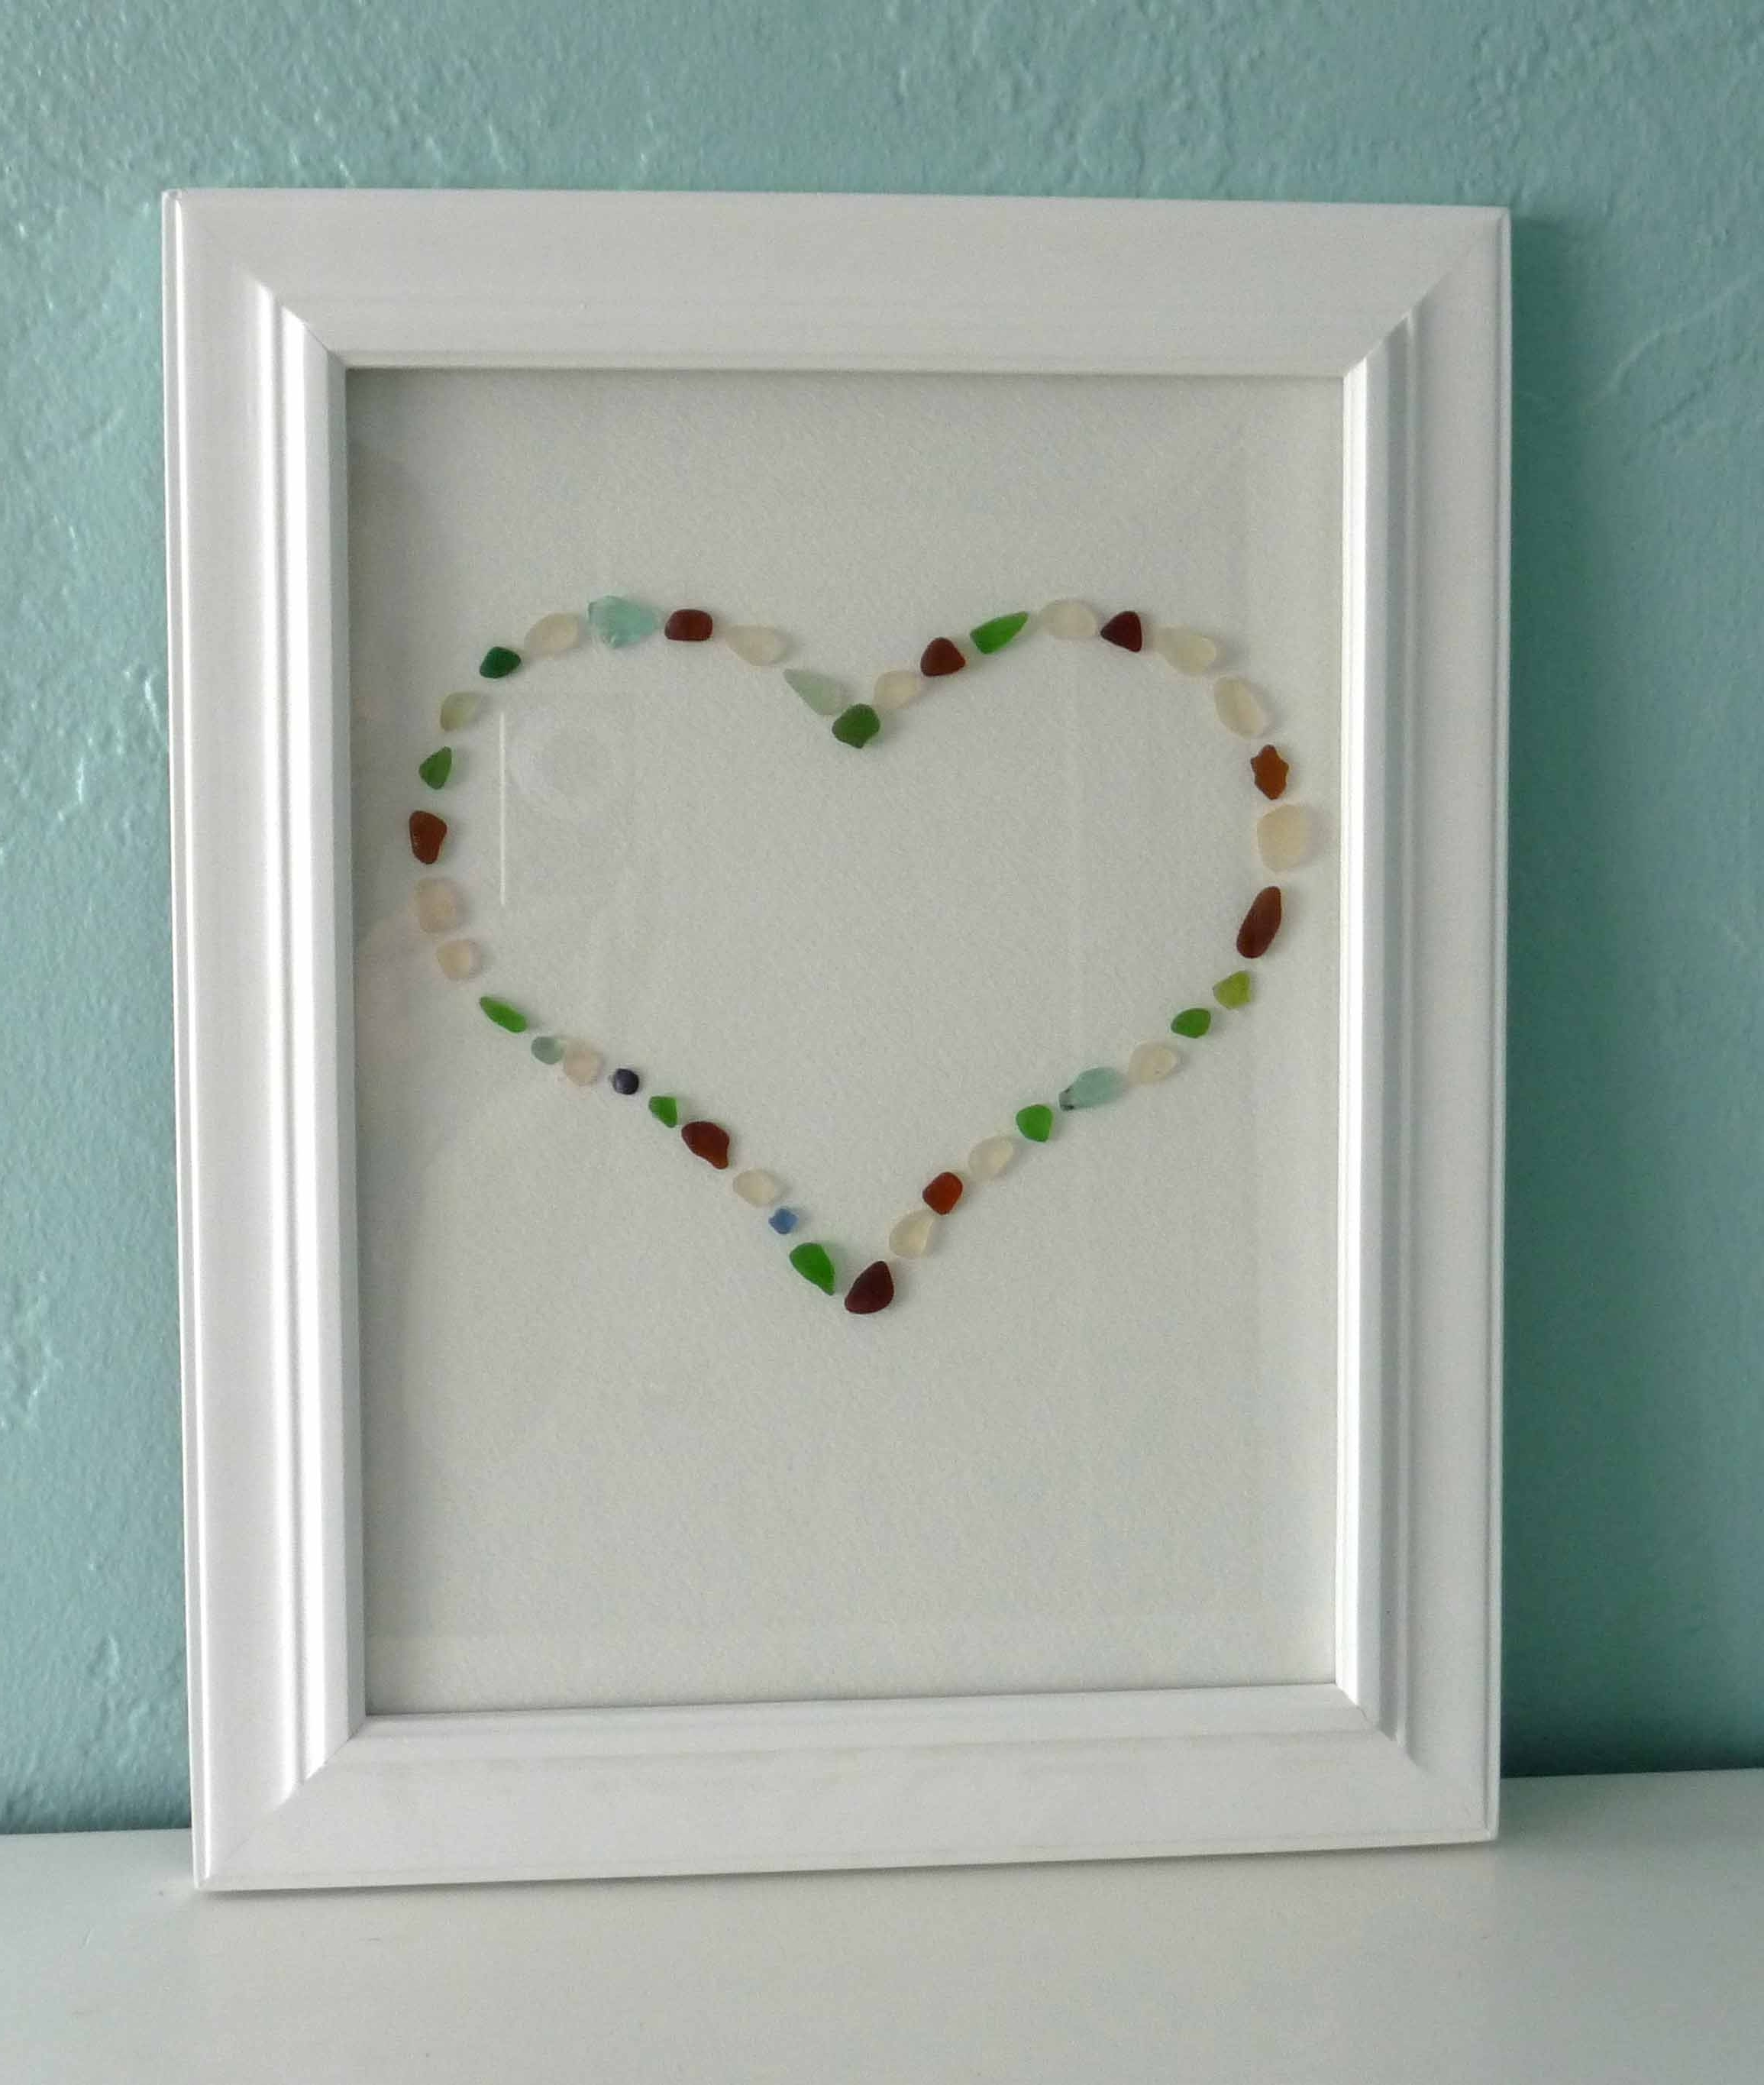 One Pretty Thing Diy Craft Tutorials, Sea Glass Wall Art – Swinki For Recent Sea Glass Wall Art (View 6 of 15)